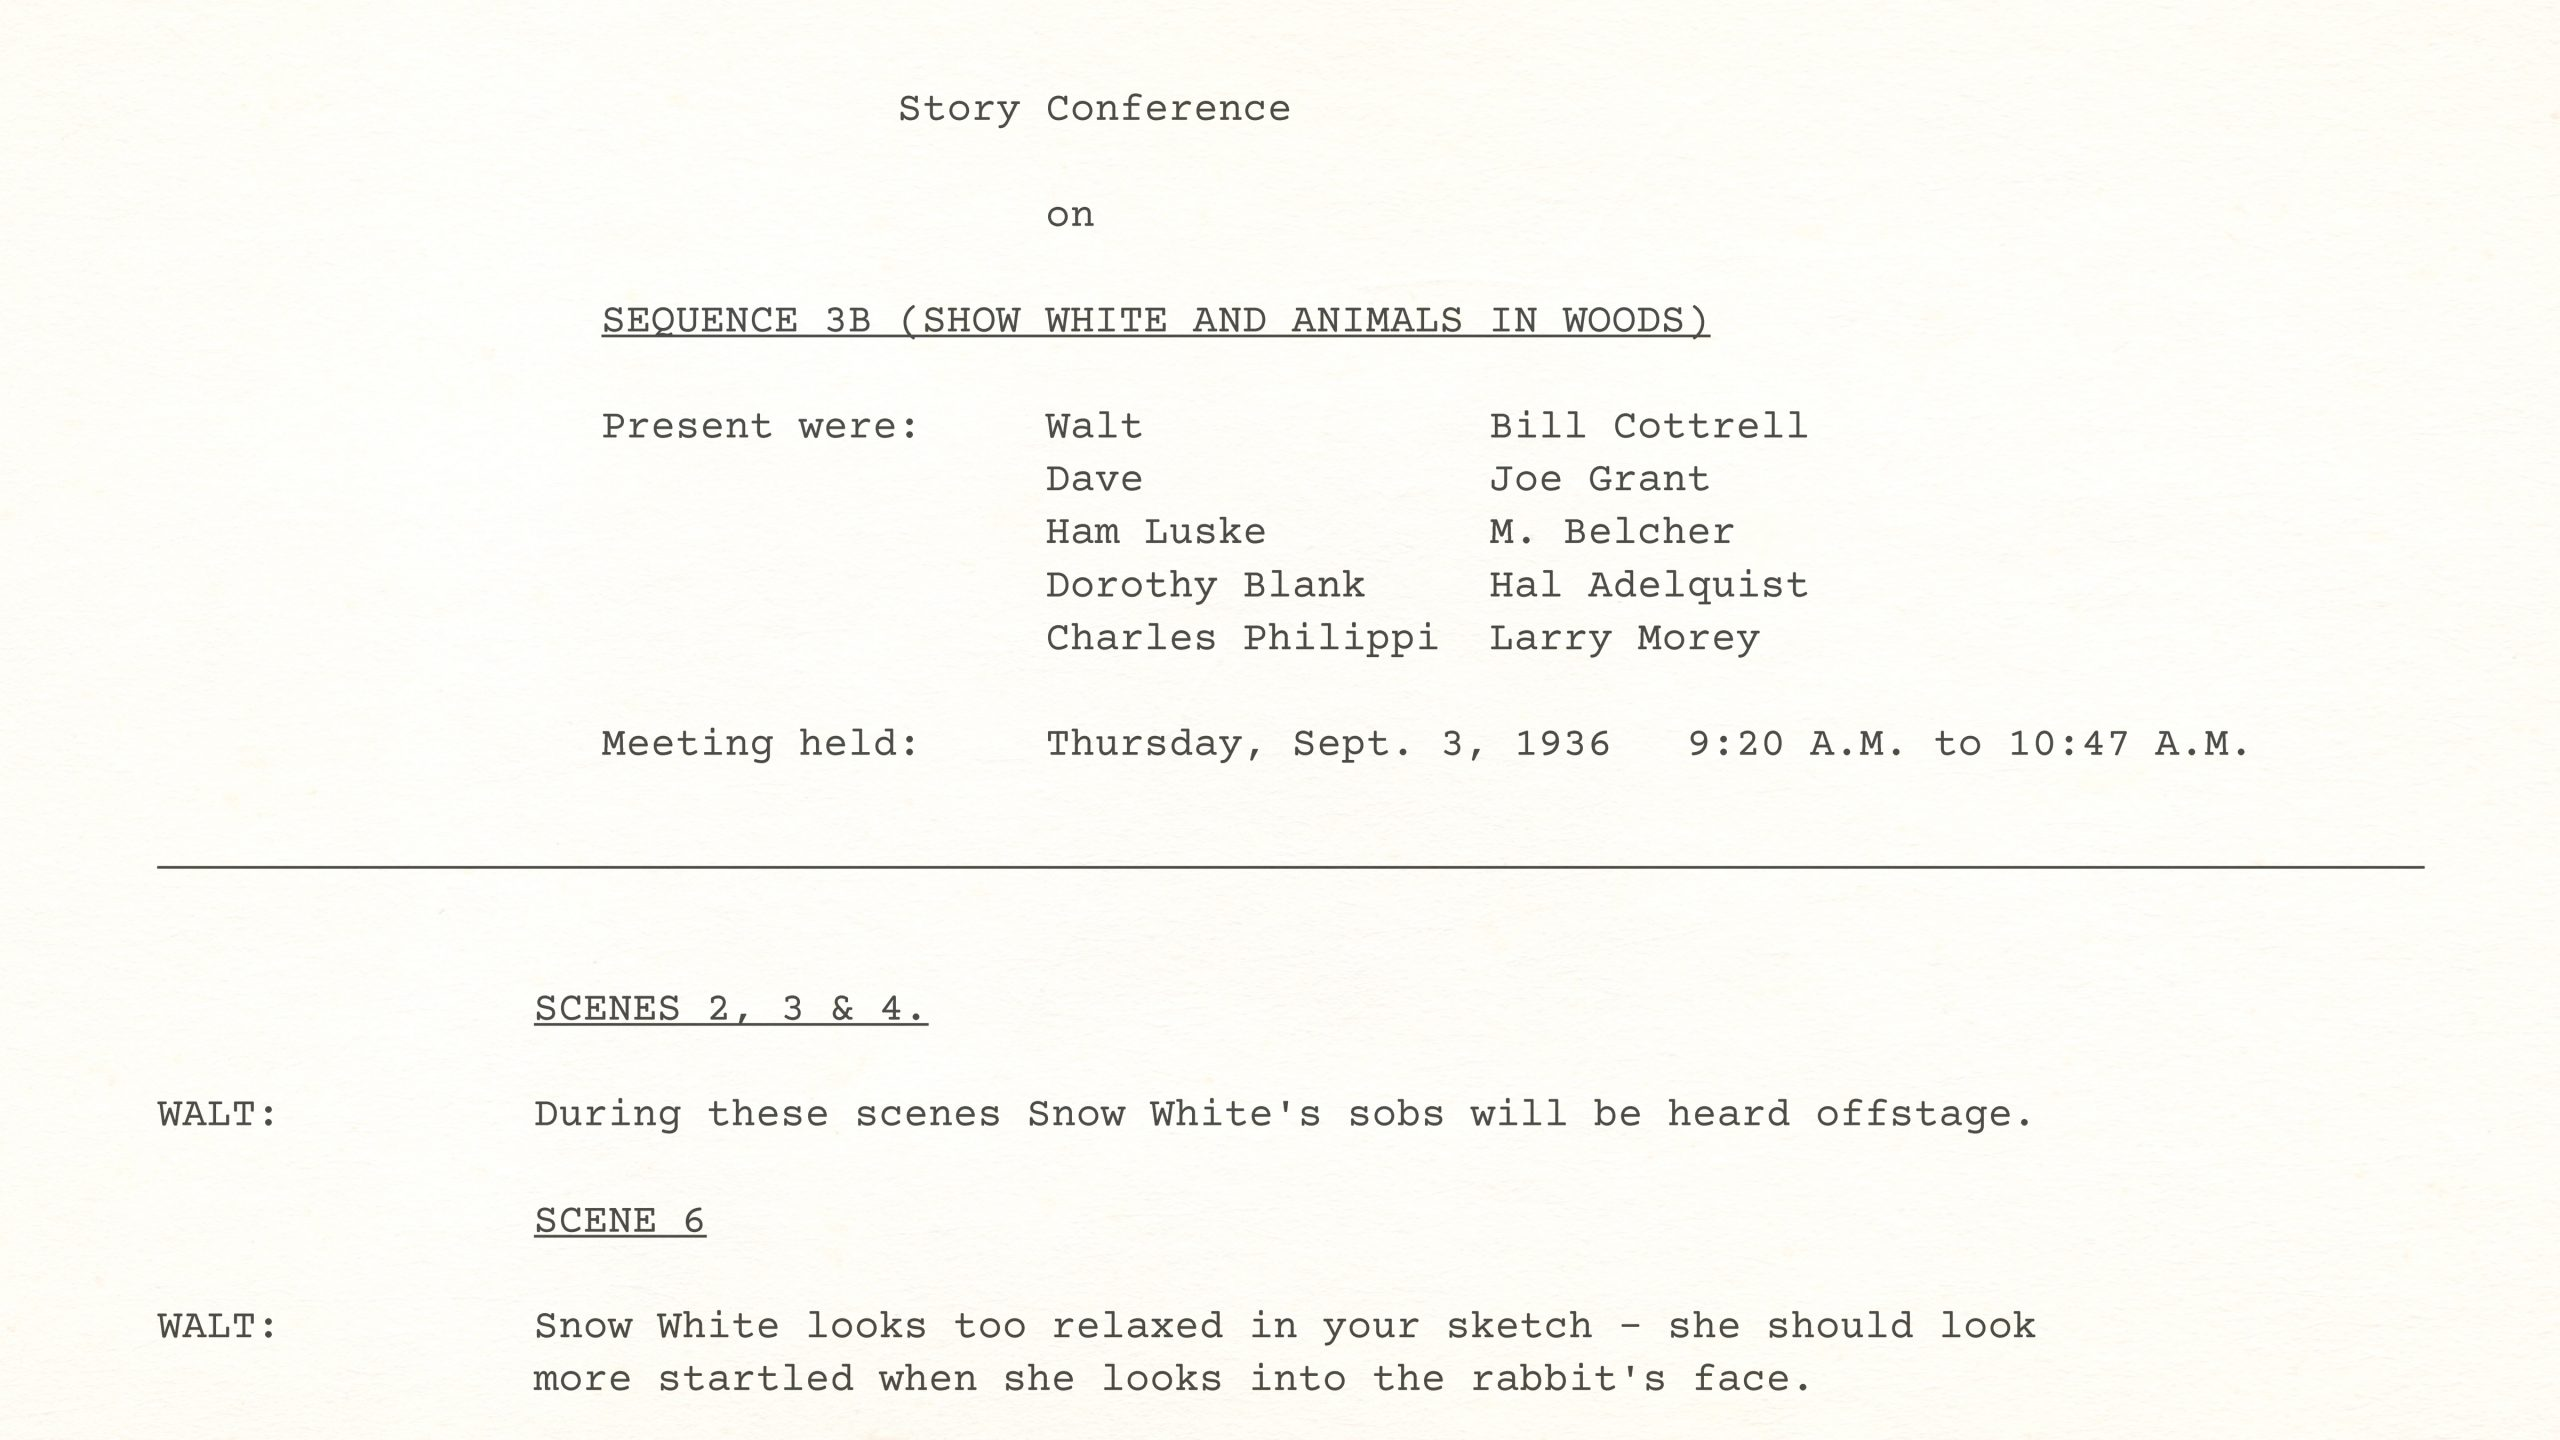 Walt Disney – Snow White STORY CONFERENCE – SEQUENCE 3-B (SHOW WHITE AND ANIMALS IN WOODS), September 3, 1936